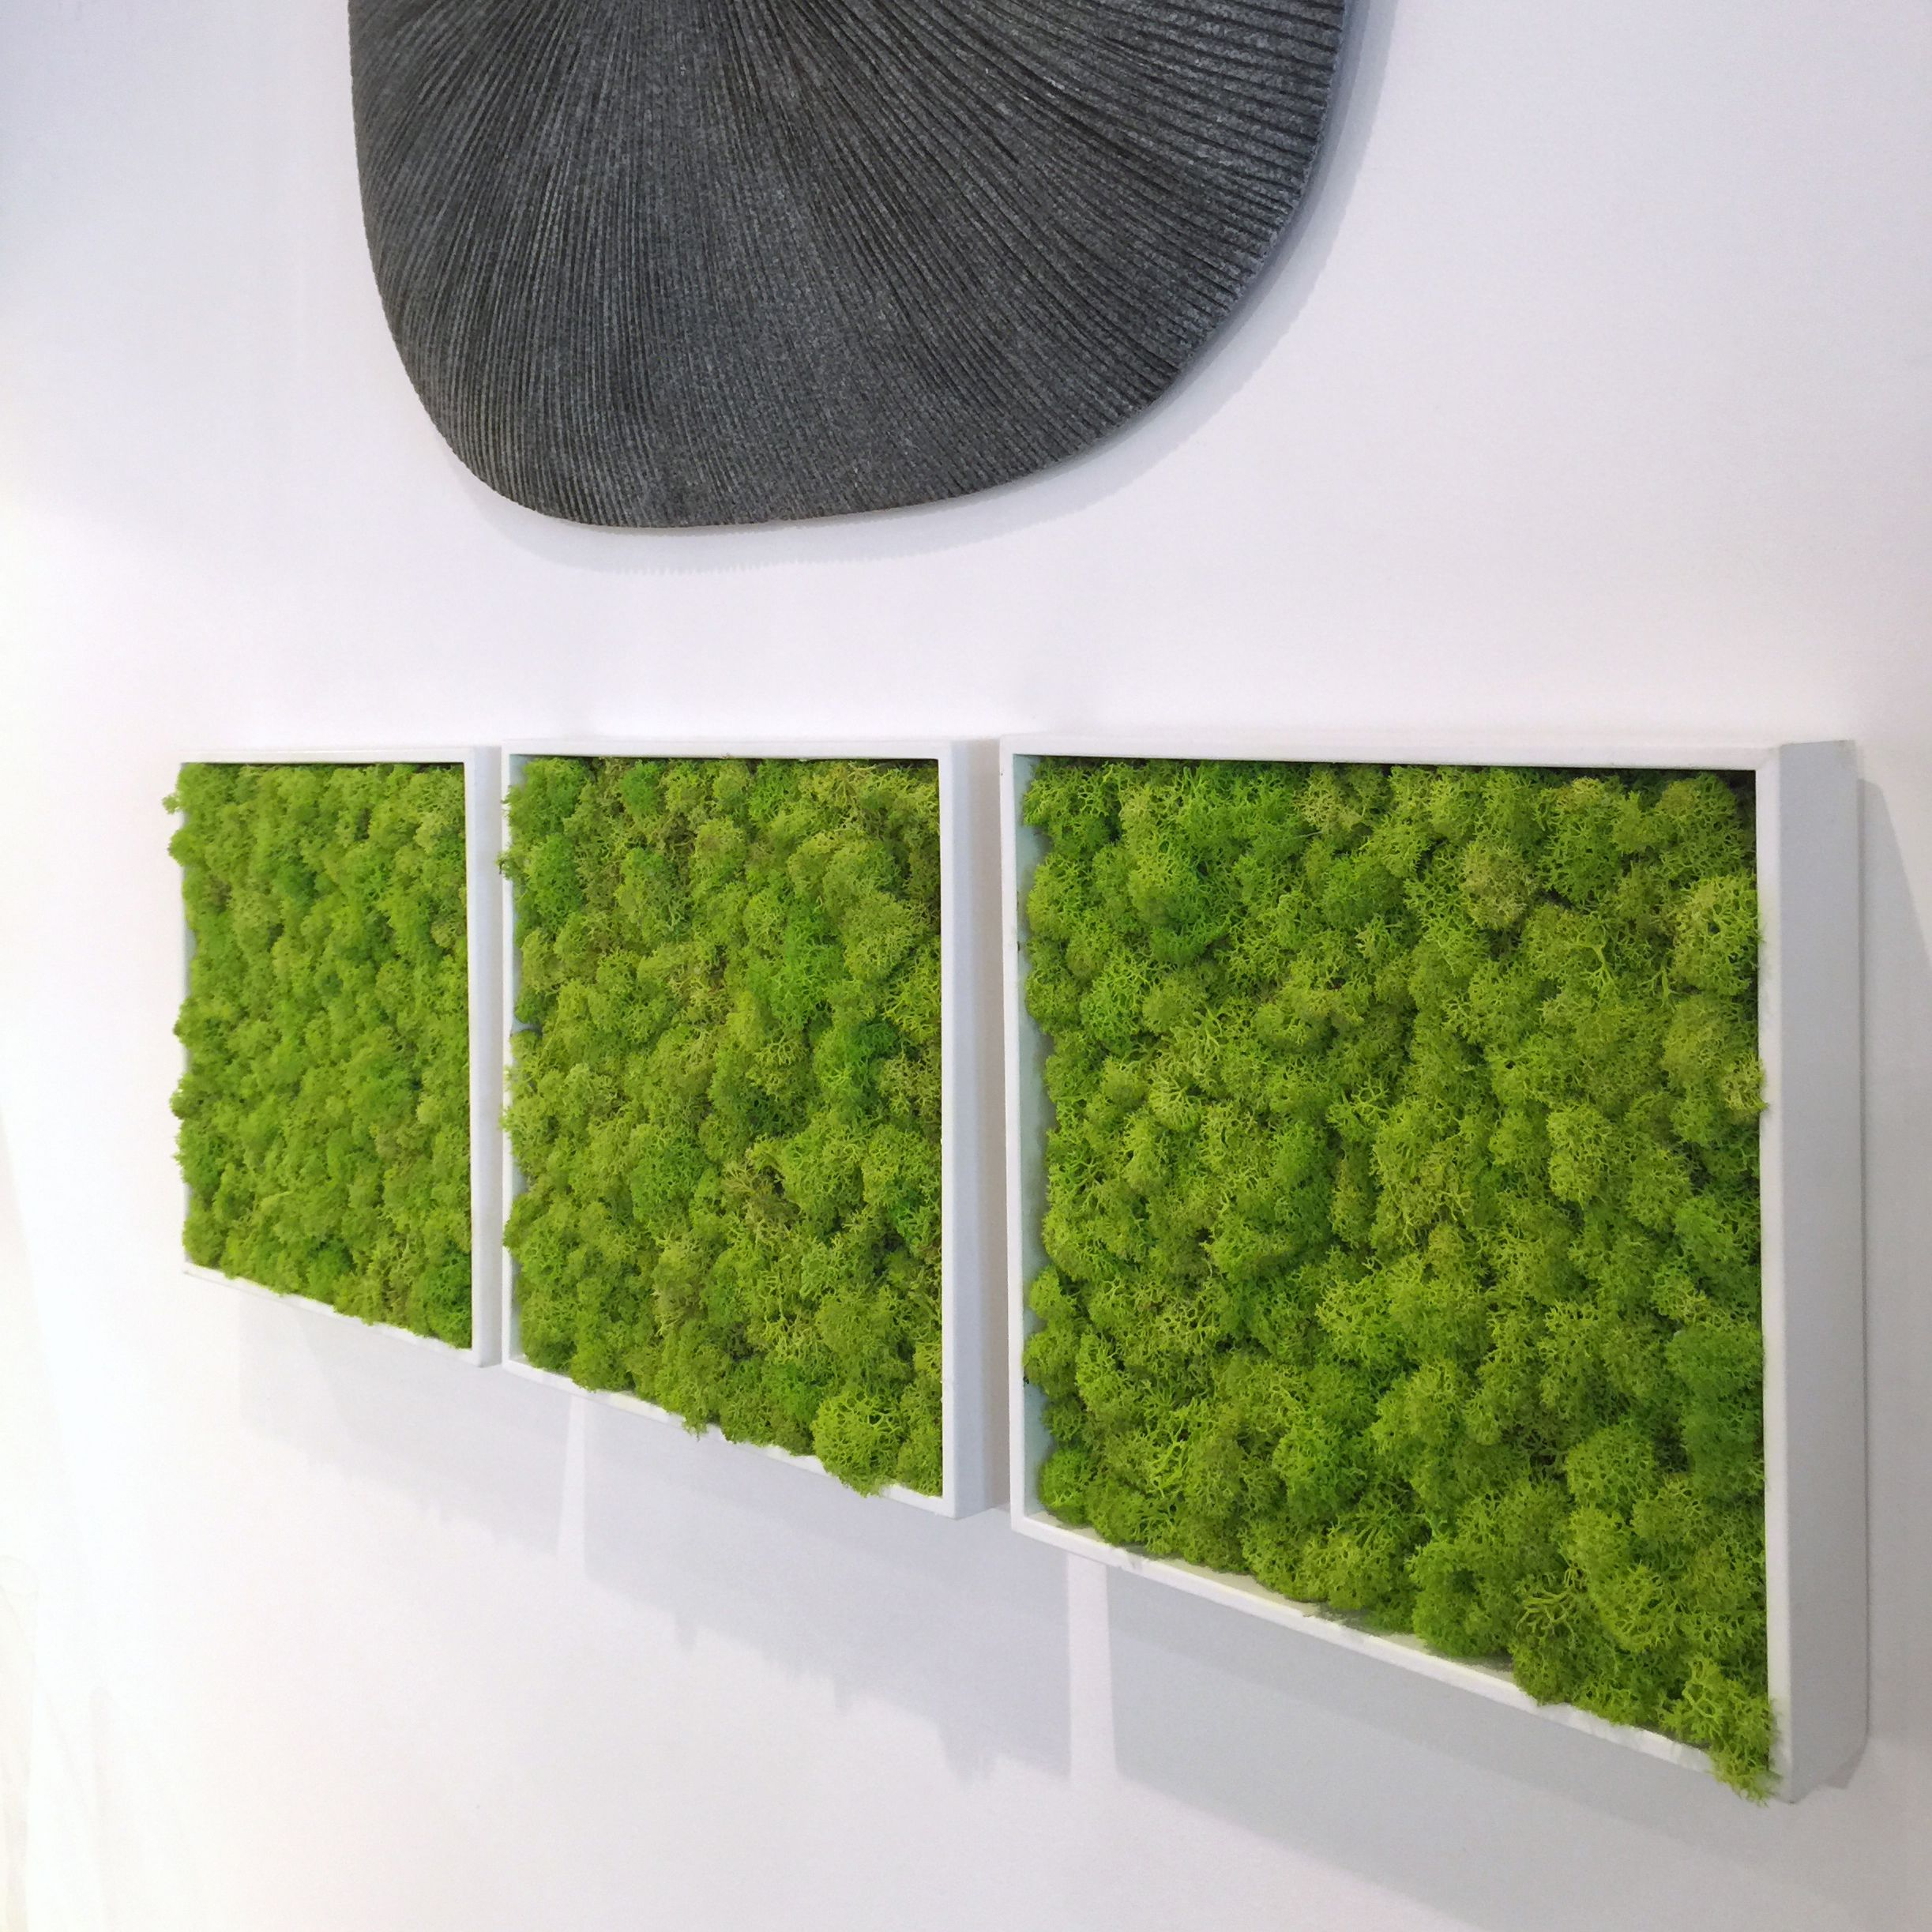 Add A Pop Of Color With These Stunning Botanical Moss Tiles Spring Green Preserved Placed In Wooden Frame Art Pieces Will Hang Style